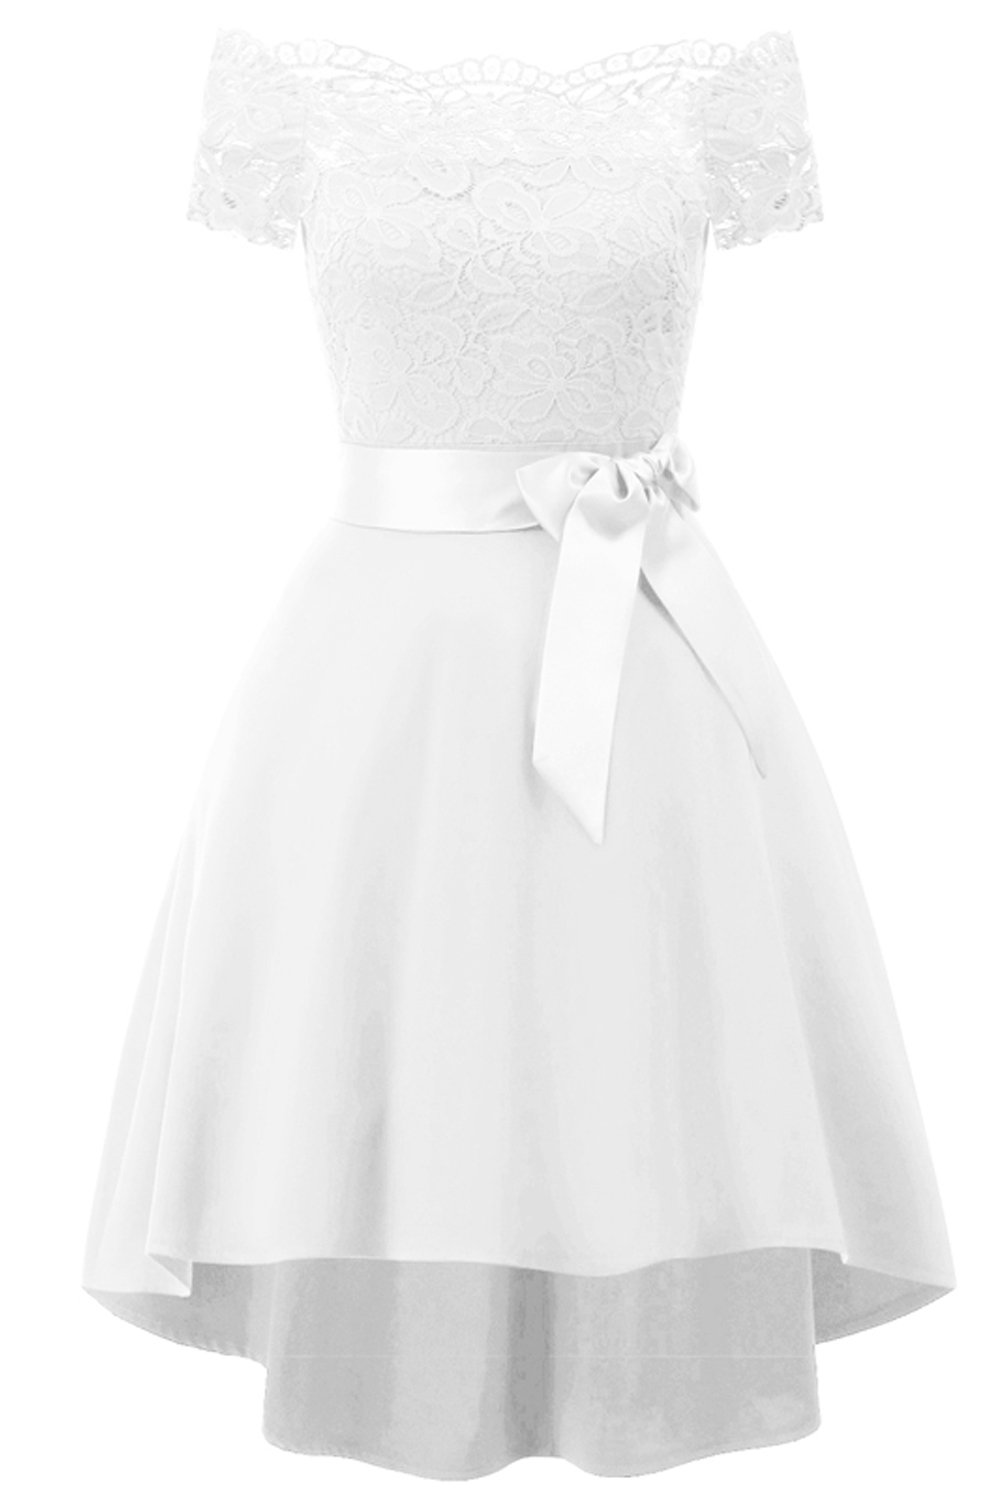 MILANO BRIDE Women's Vintage Floral Lace Short Sleeves Boat Neck Cocktail Formal Swing Dress-L-White by MILANO BRIDE (Image #1)